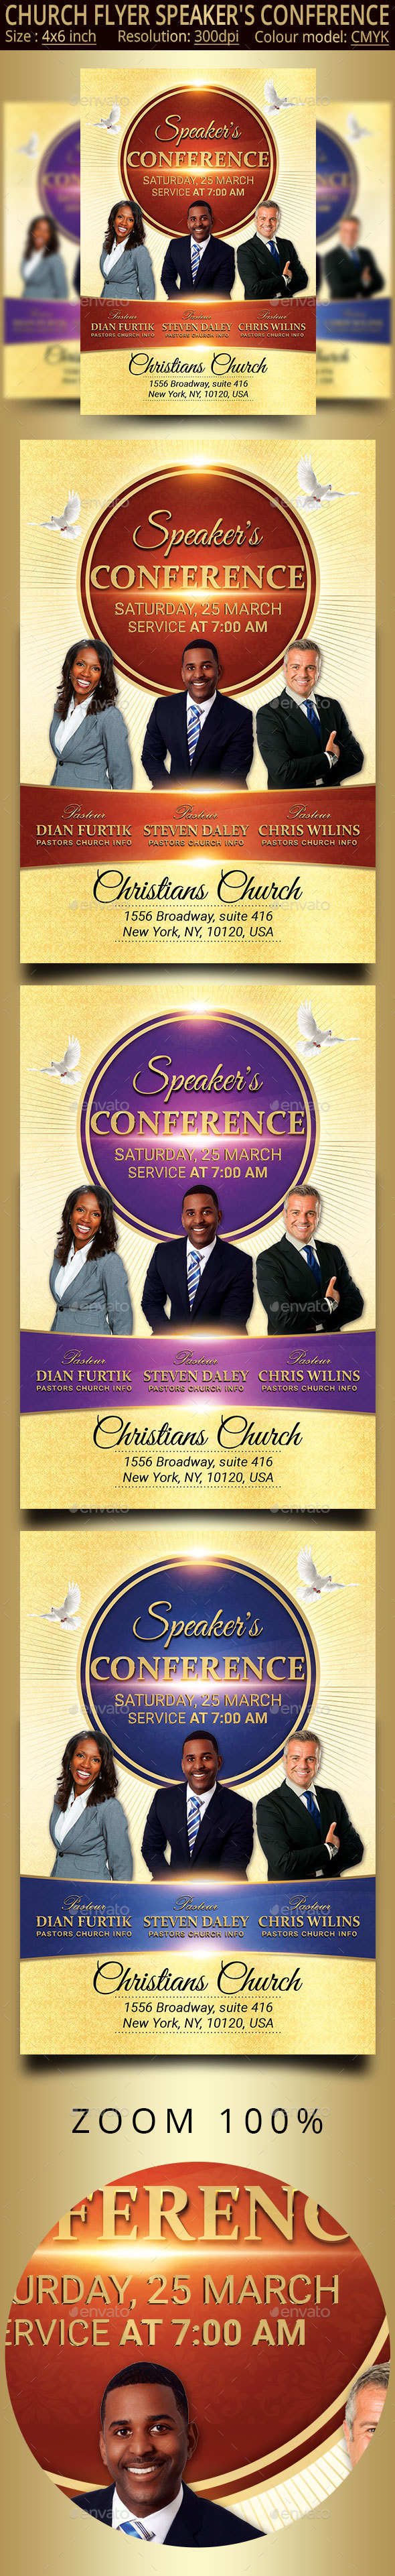 Speaker's Conference Church Flyer - Church Flyers